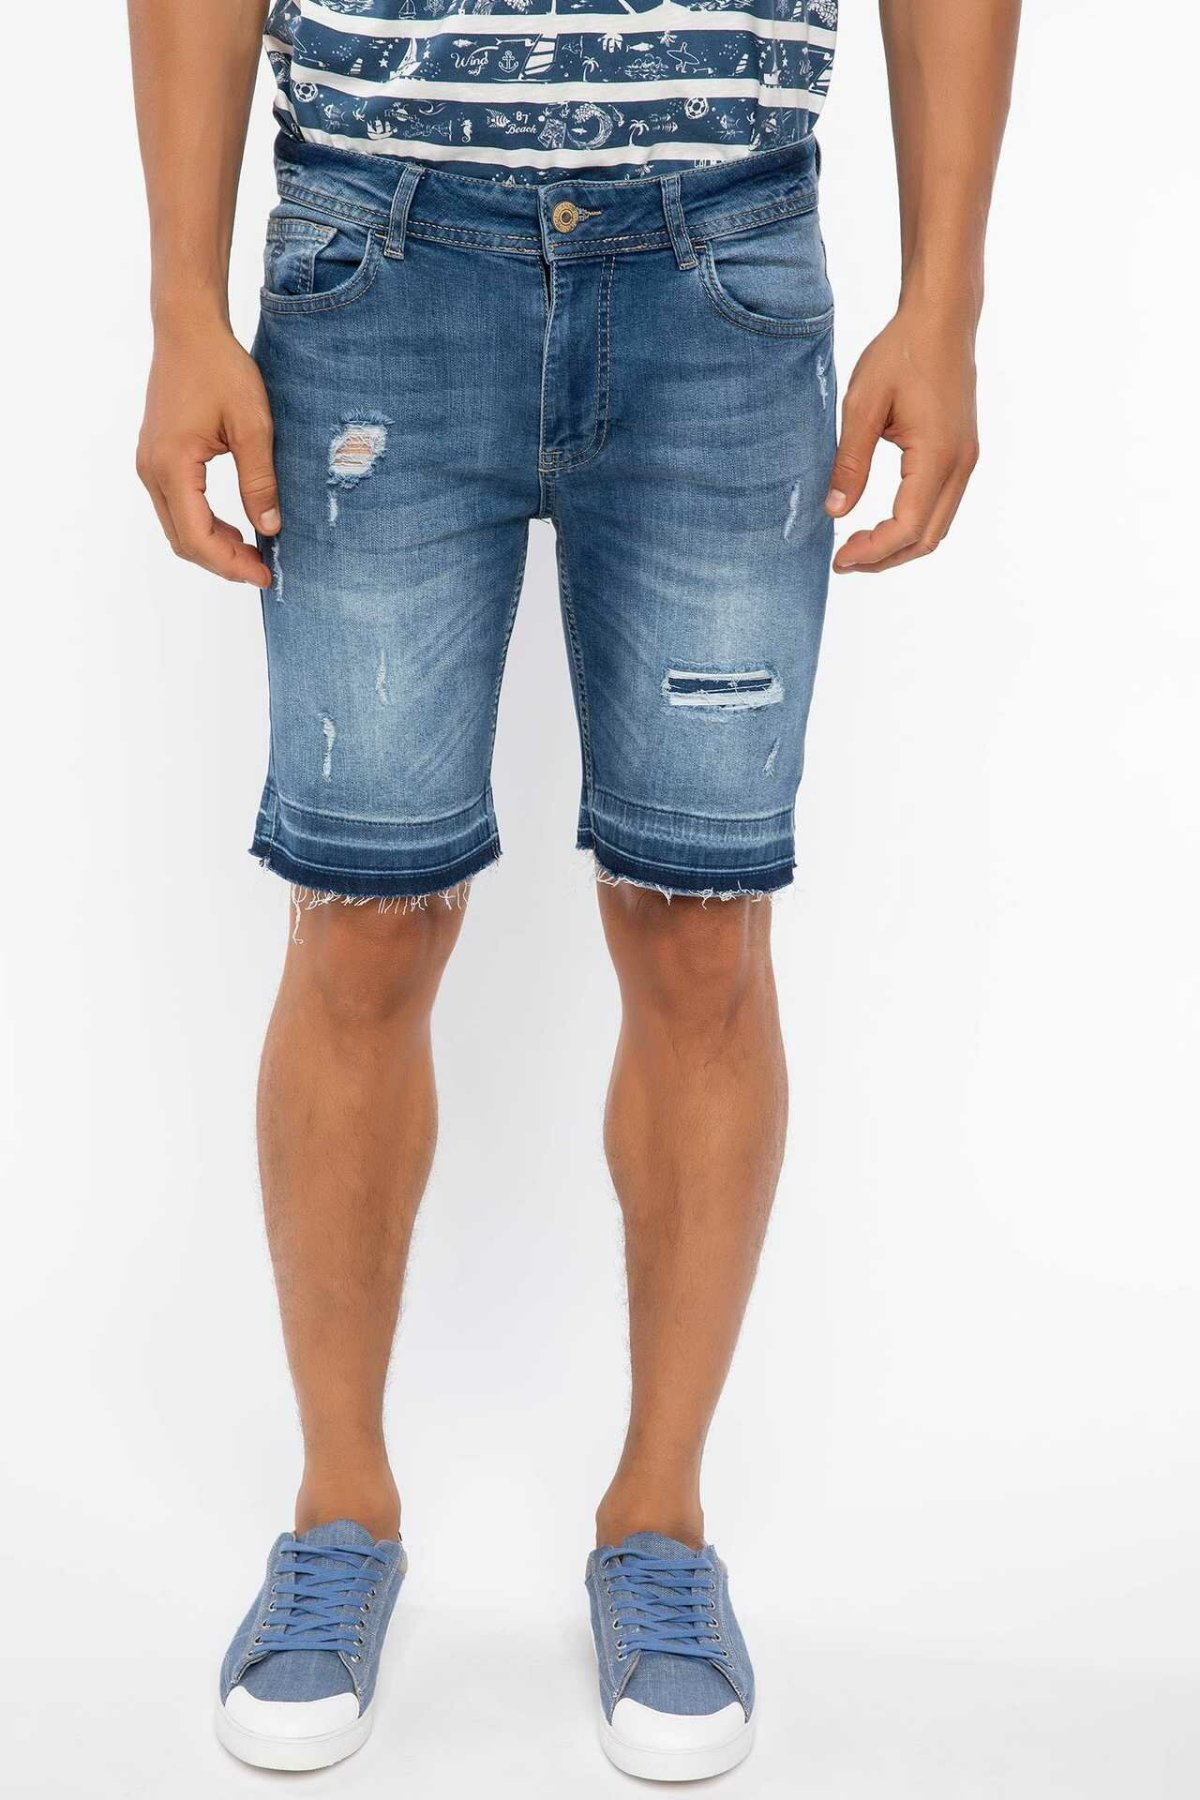 DeFacto Summer Men Ripped Holes Denim Shorts Sky Blue Washed Short Denim Jeans Bermuda I8988AZ18HSNM28-I8988AZ18HS